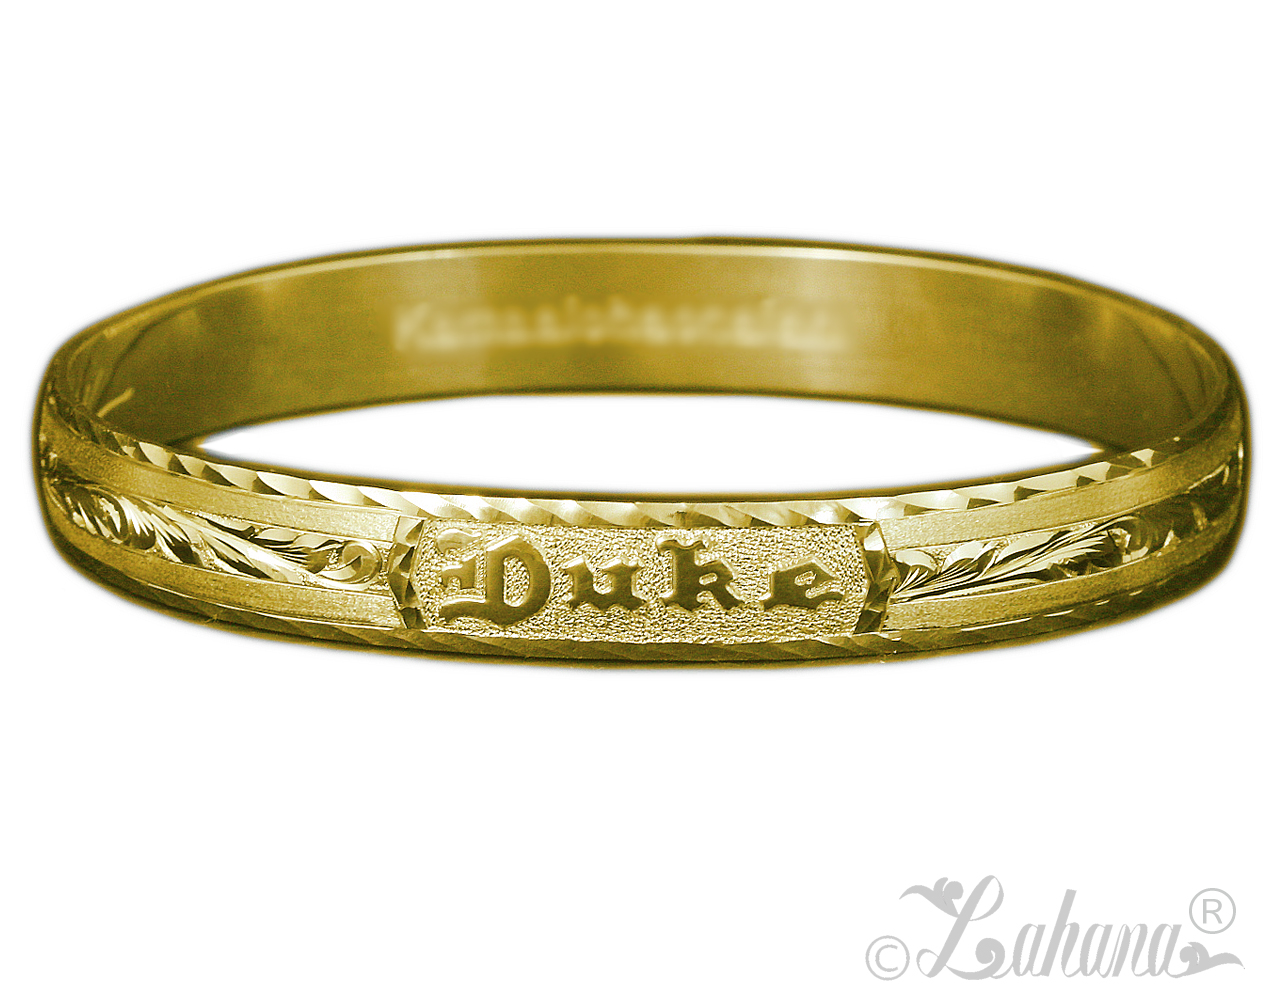 14k-modern-design-customized-bangle-wm1.jpg